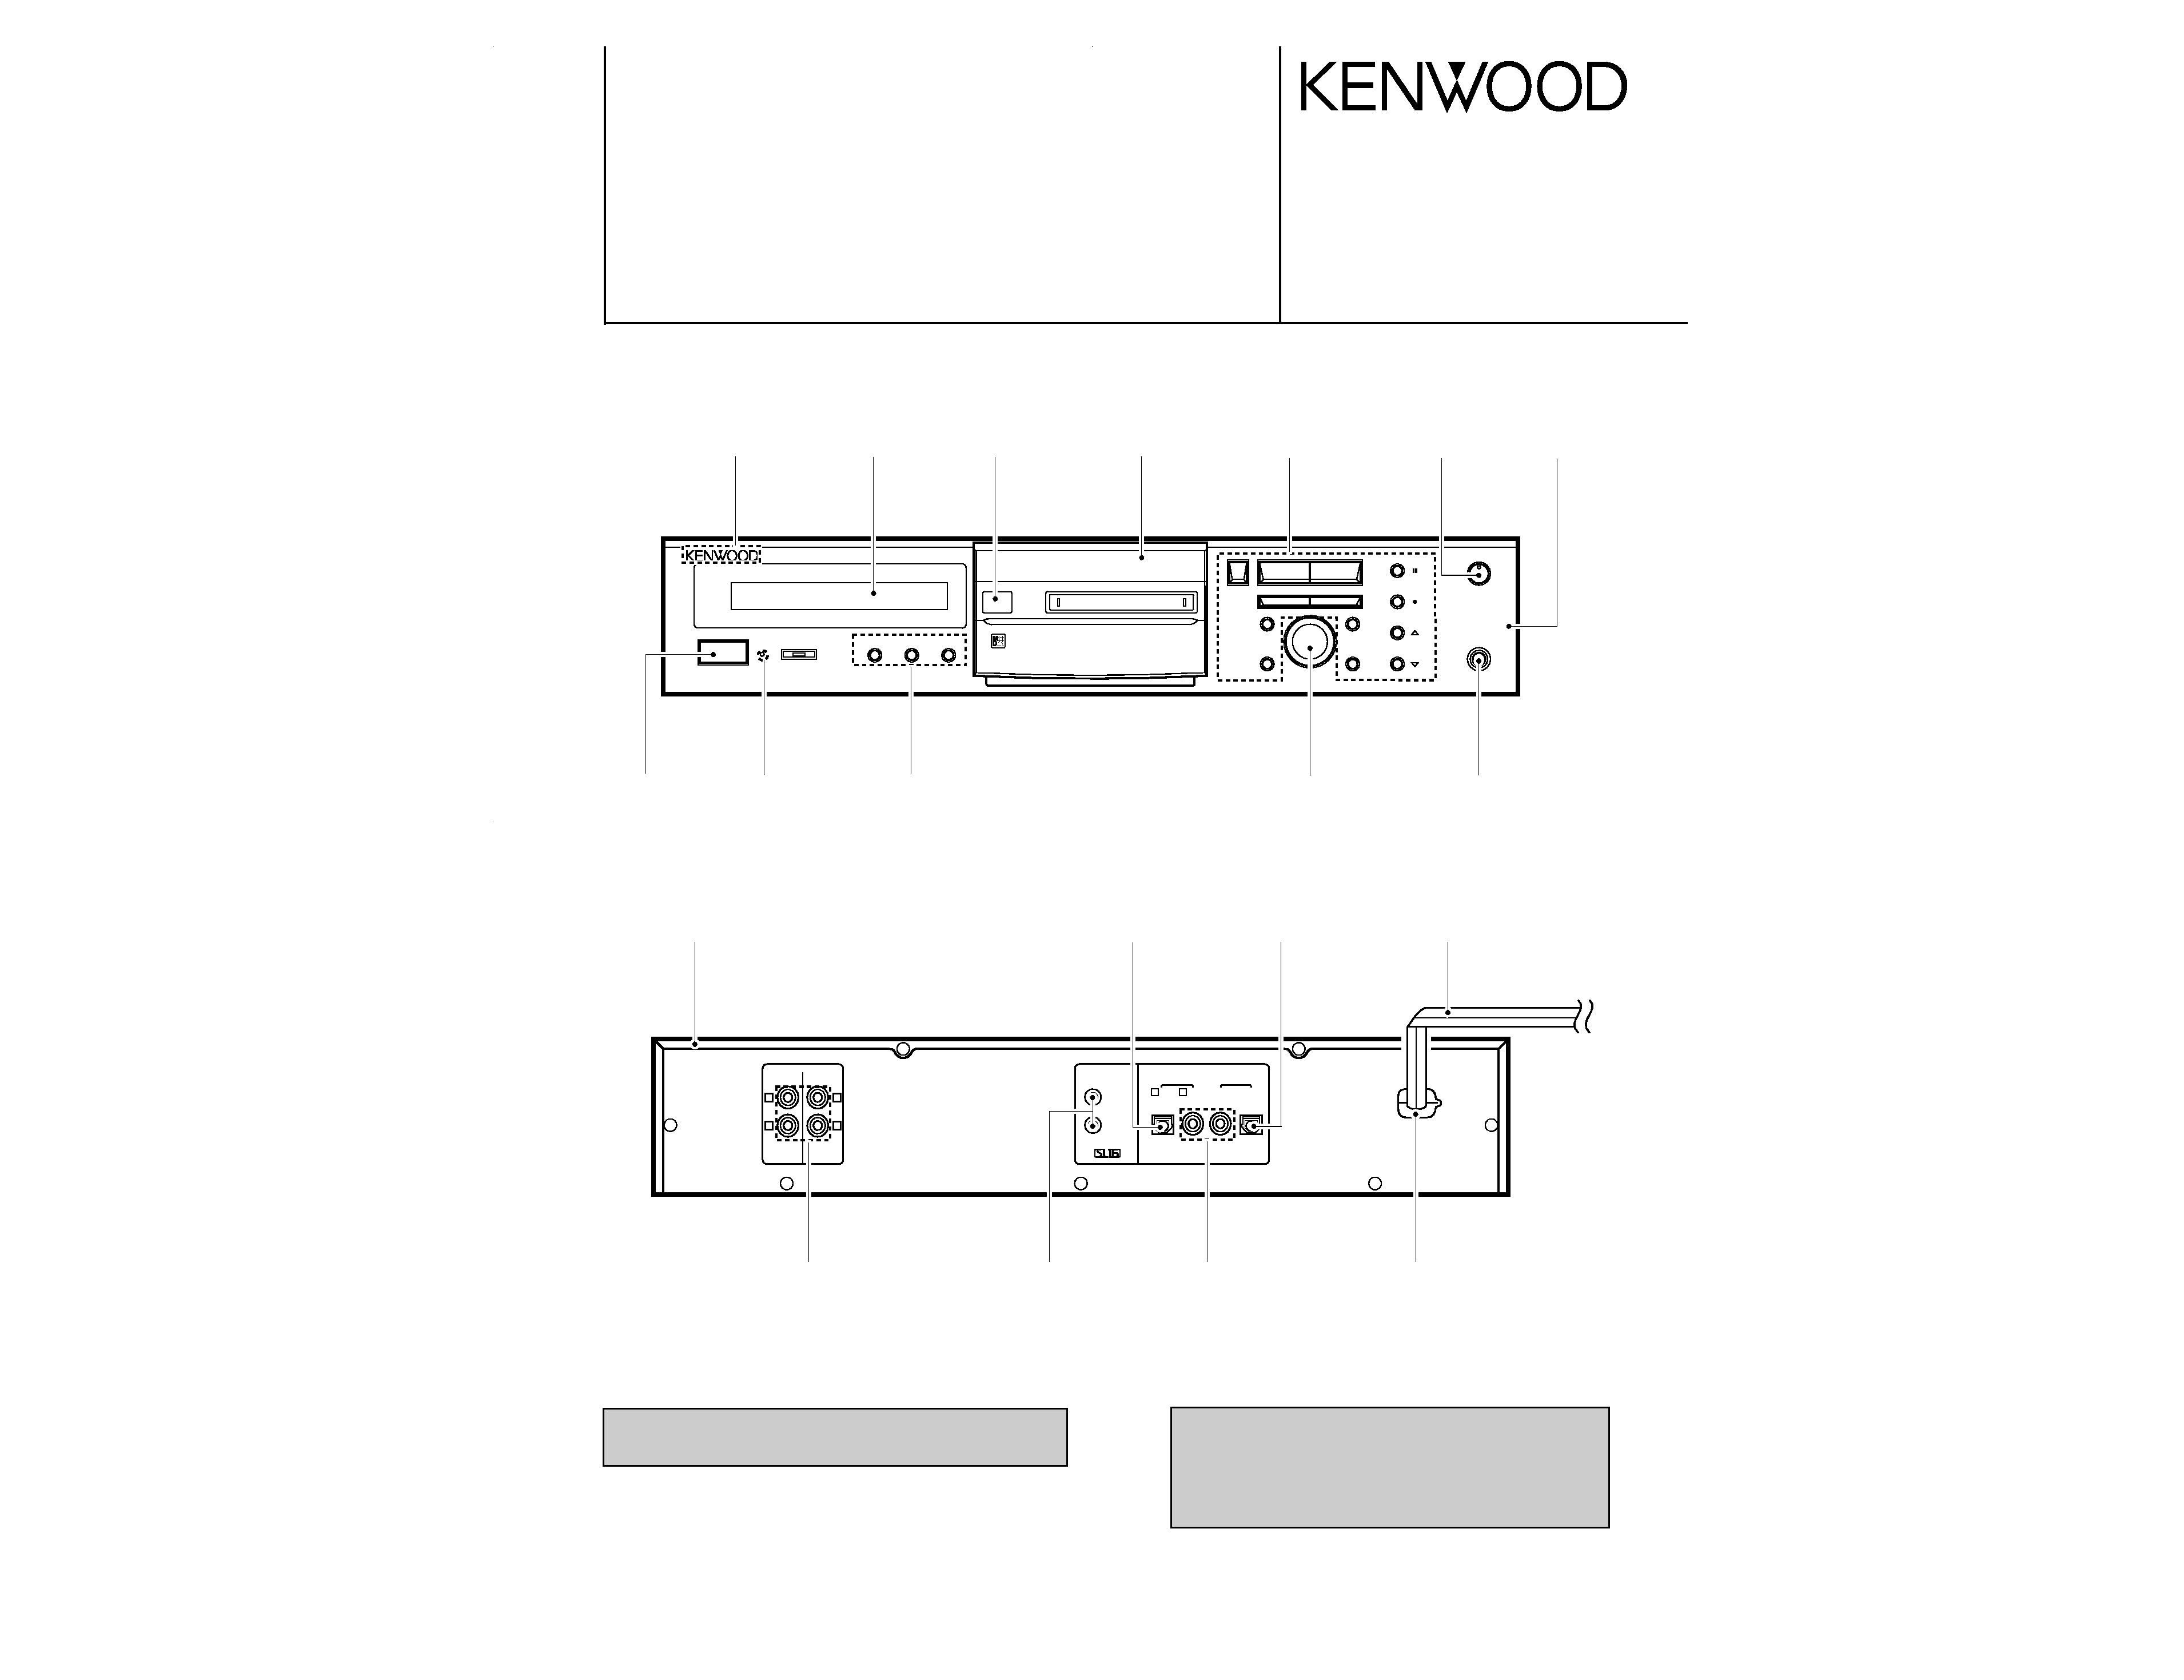 Kenwood Dmf5020 Service Manual Immediate Download Re Circuits Circuit For Nonreg Lasers Background Image